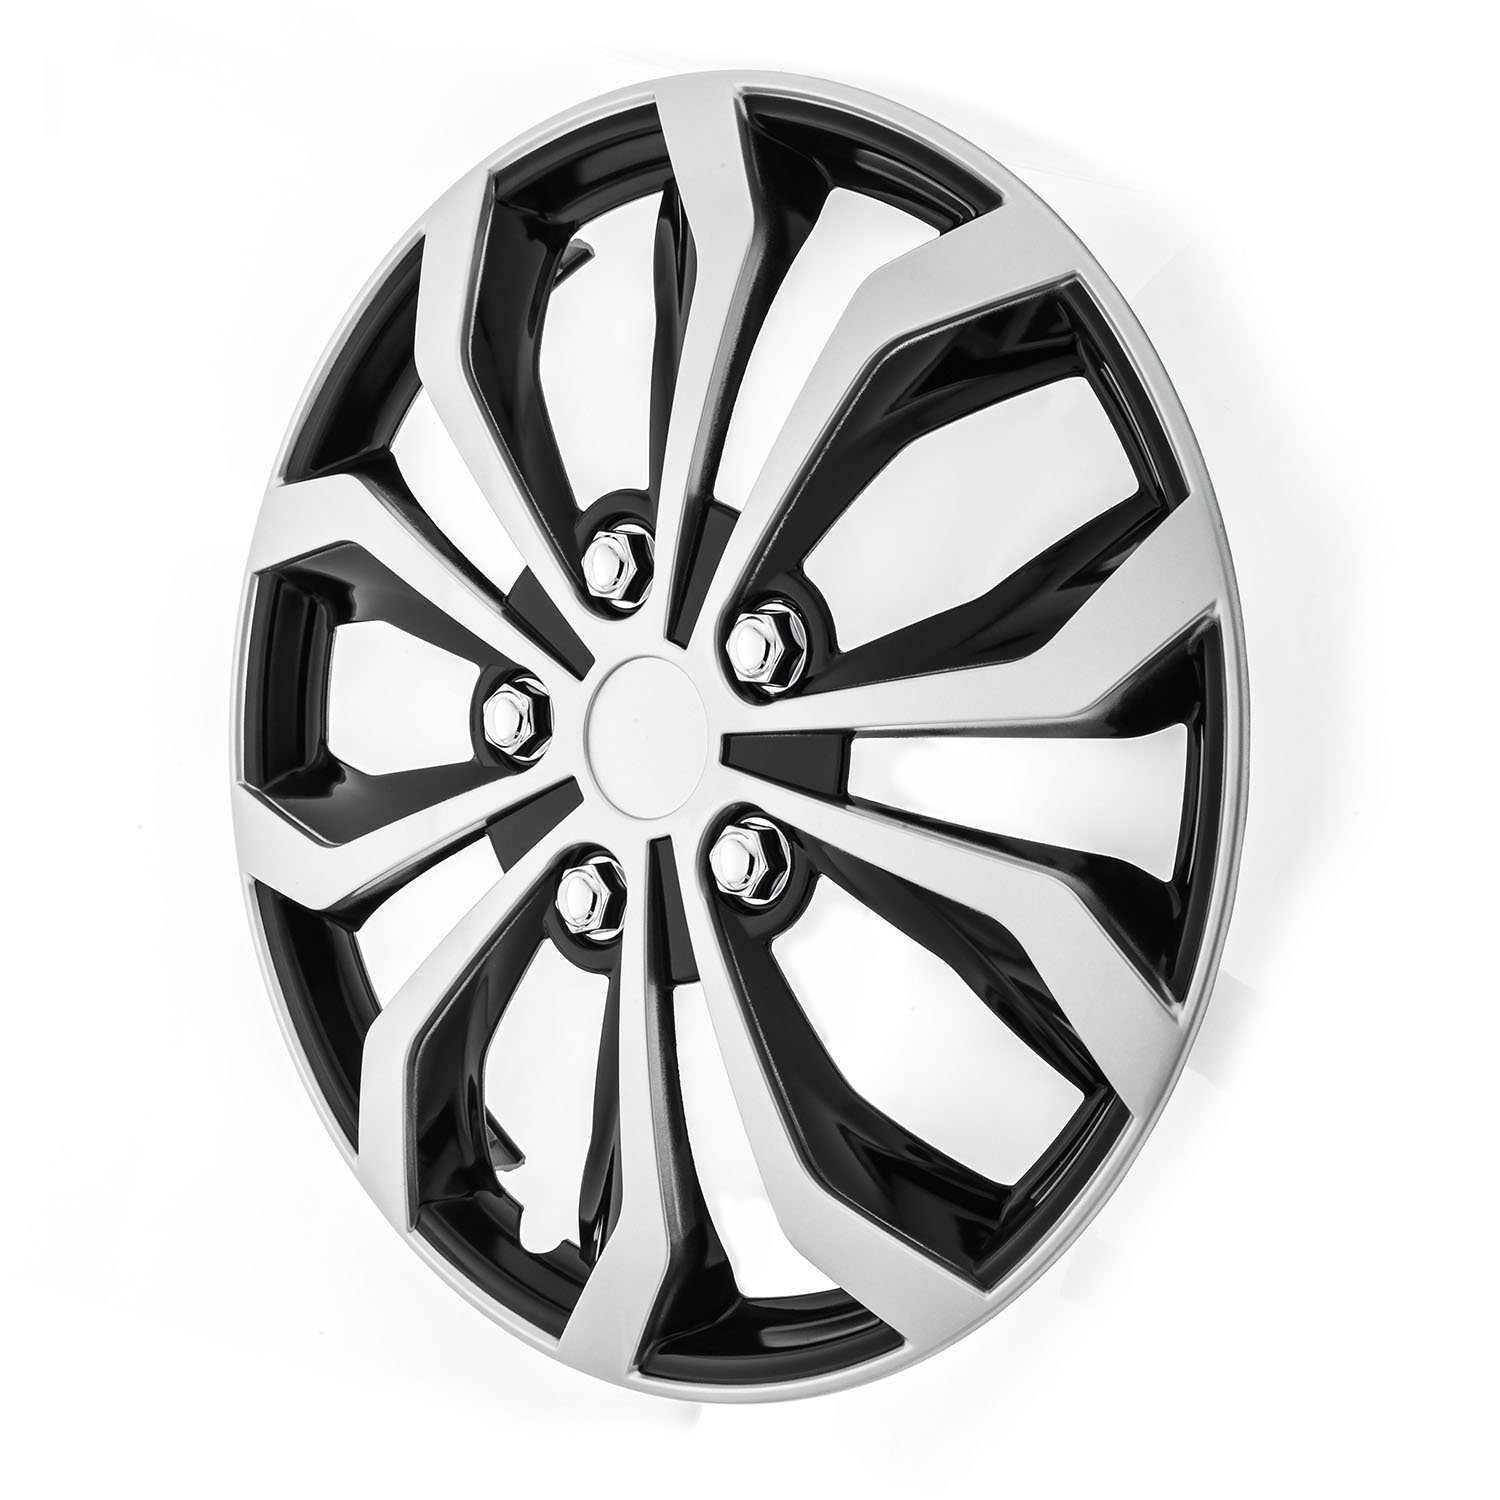 Pilot WH553-16S-BS Universal Fit Spyder Black/Silver Finish 16 Inch Wheel Covers - Set of 4 by Pilot Automotive (Image #2)